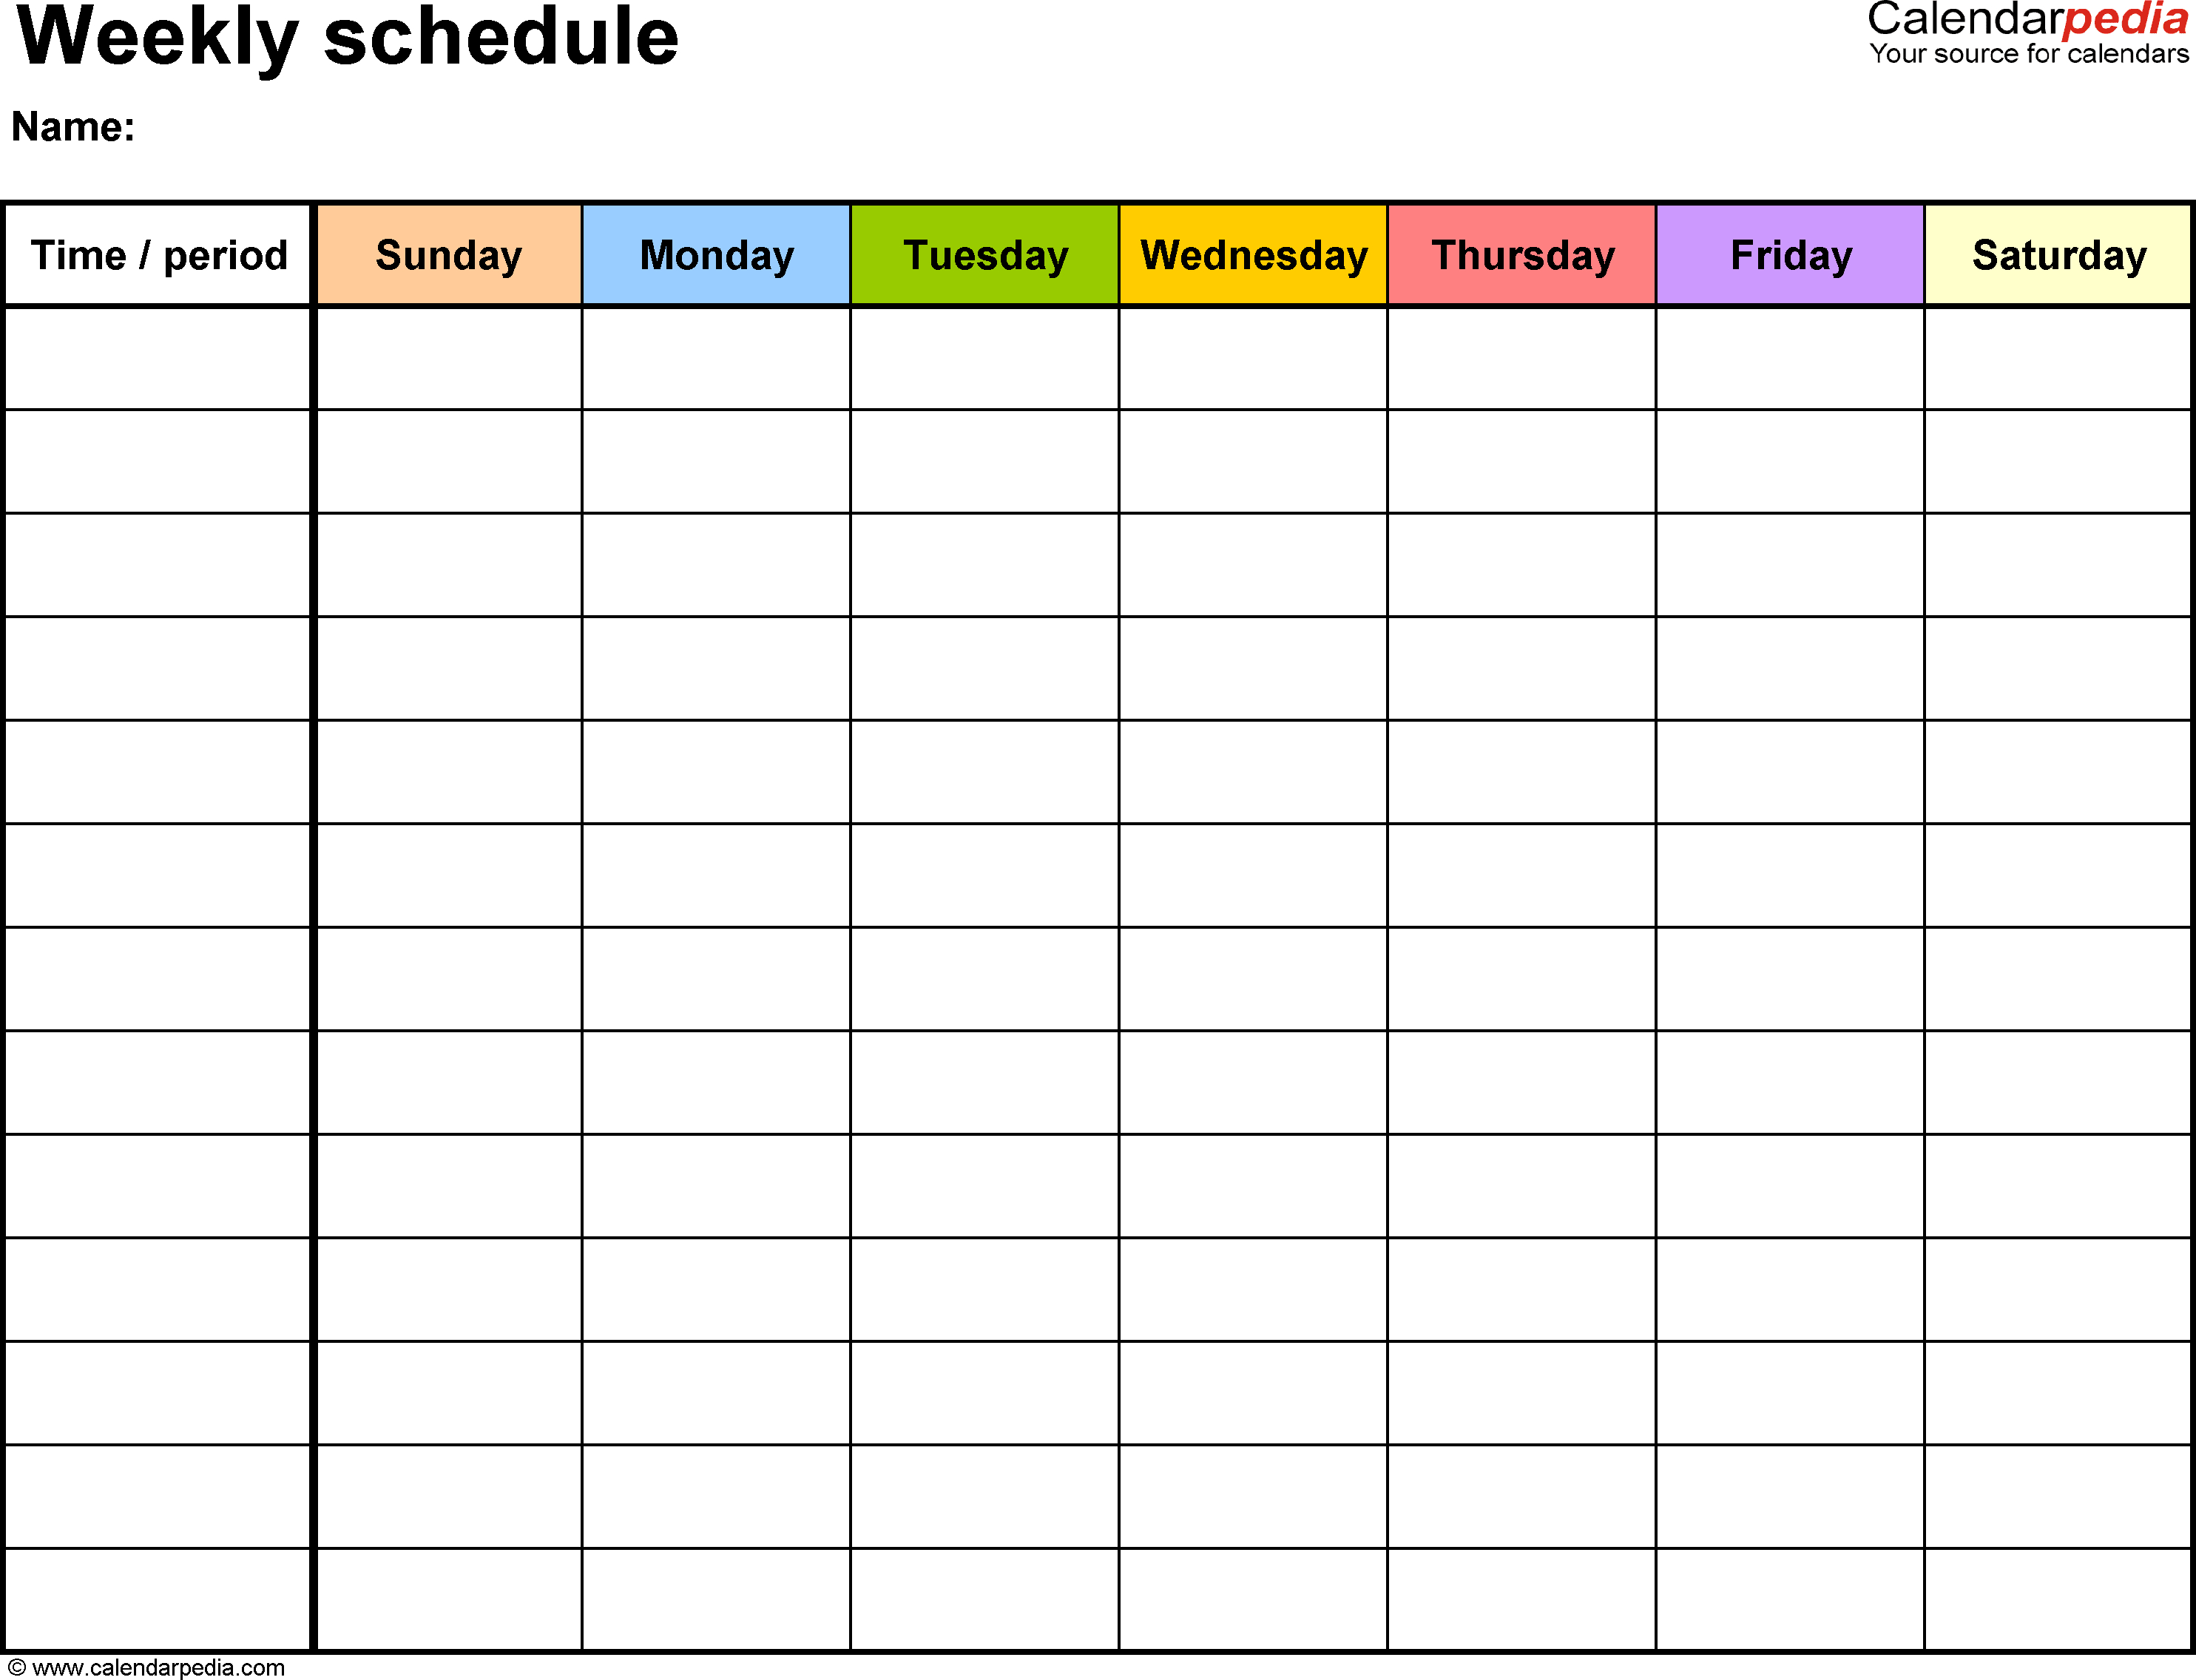 Free Weekly Schedule Templates For Excel - 18 Templates with Blank Calendar Hourly Schedule